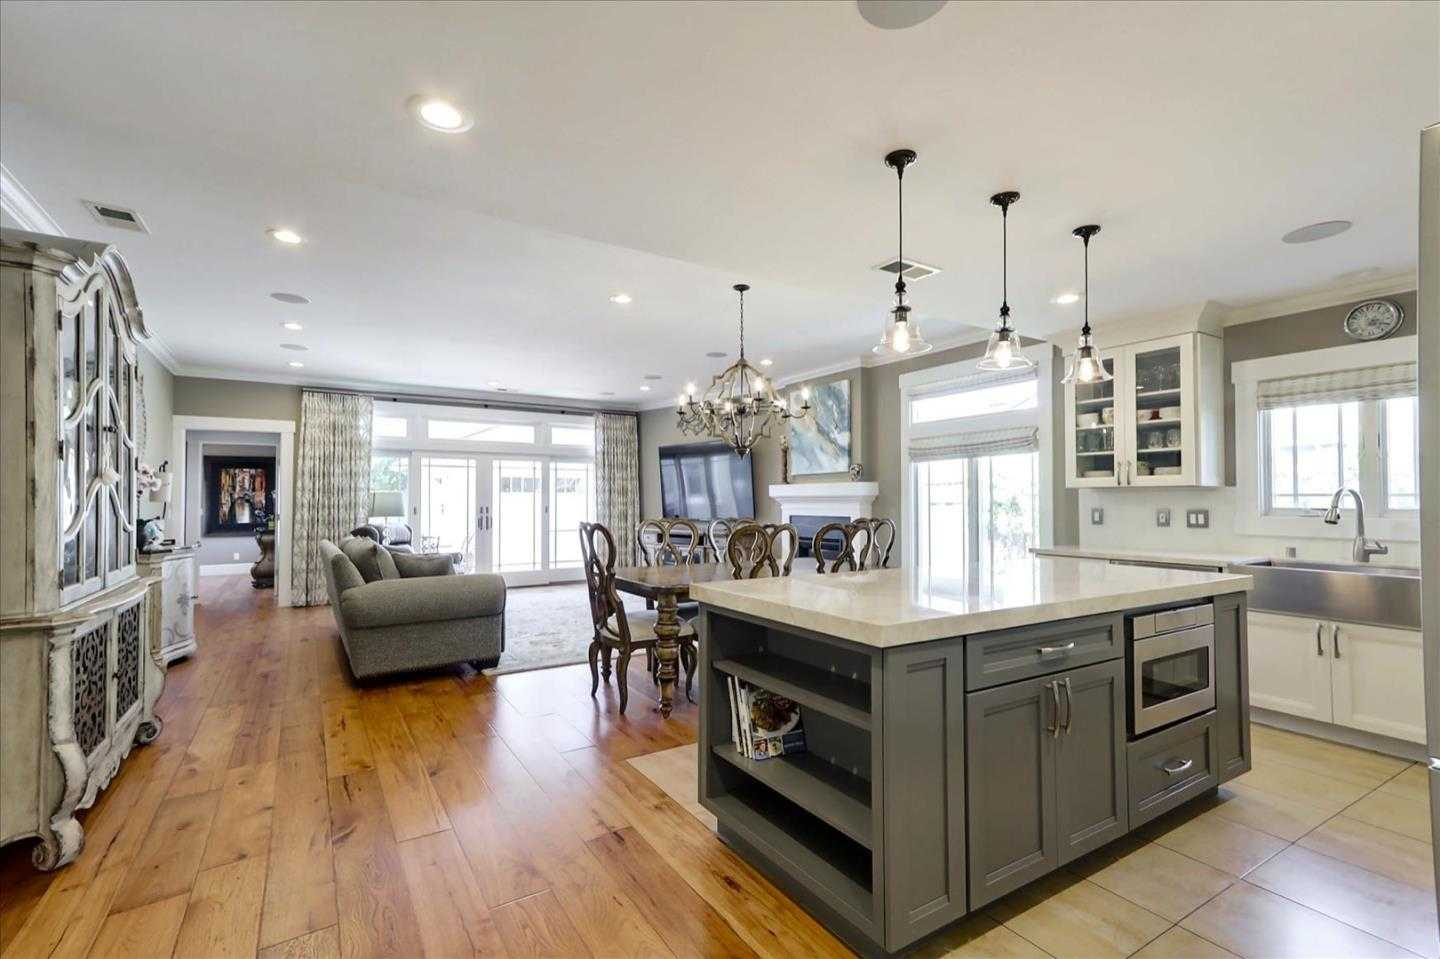 $1,999,000 - 3Br/2Ba -  for Sale in San Jose